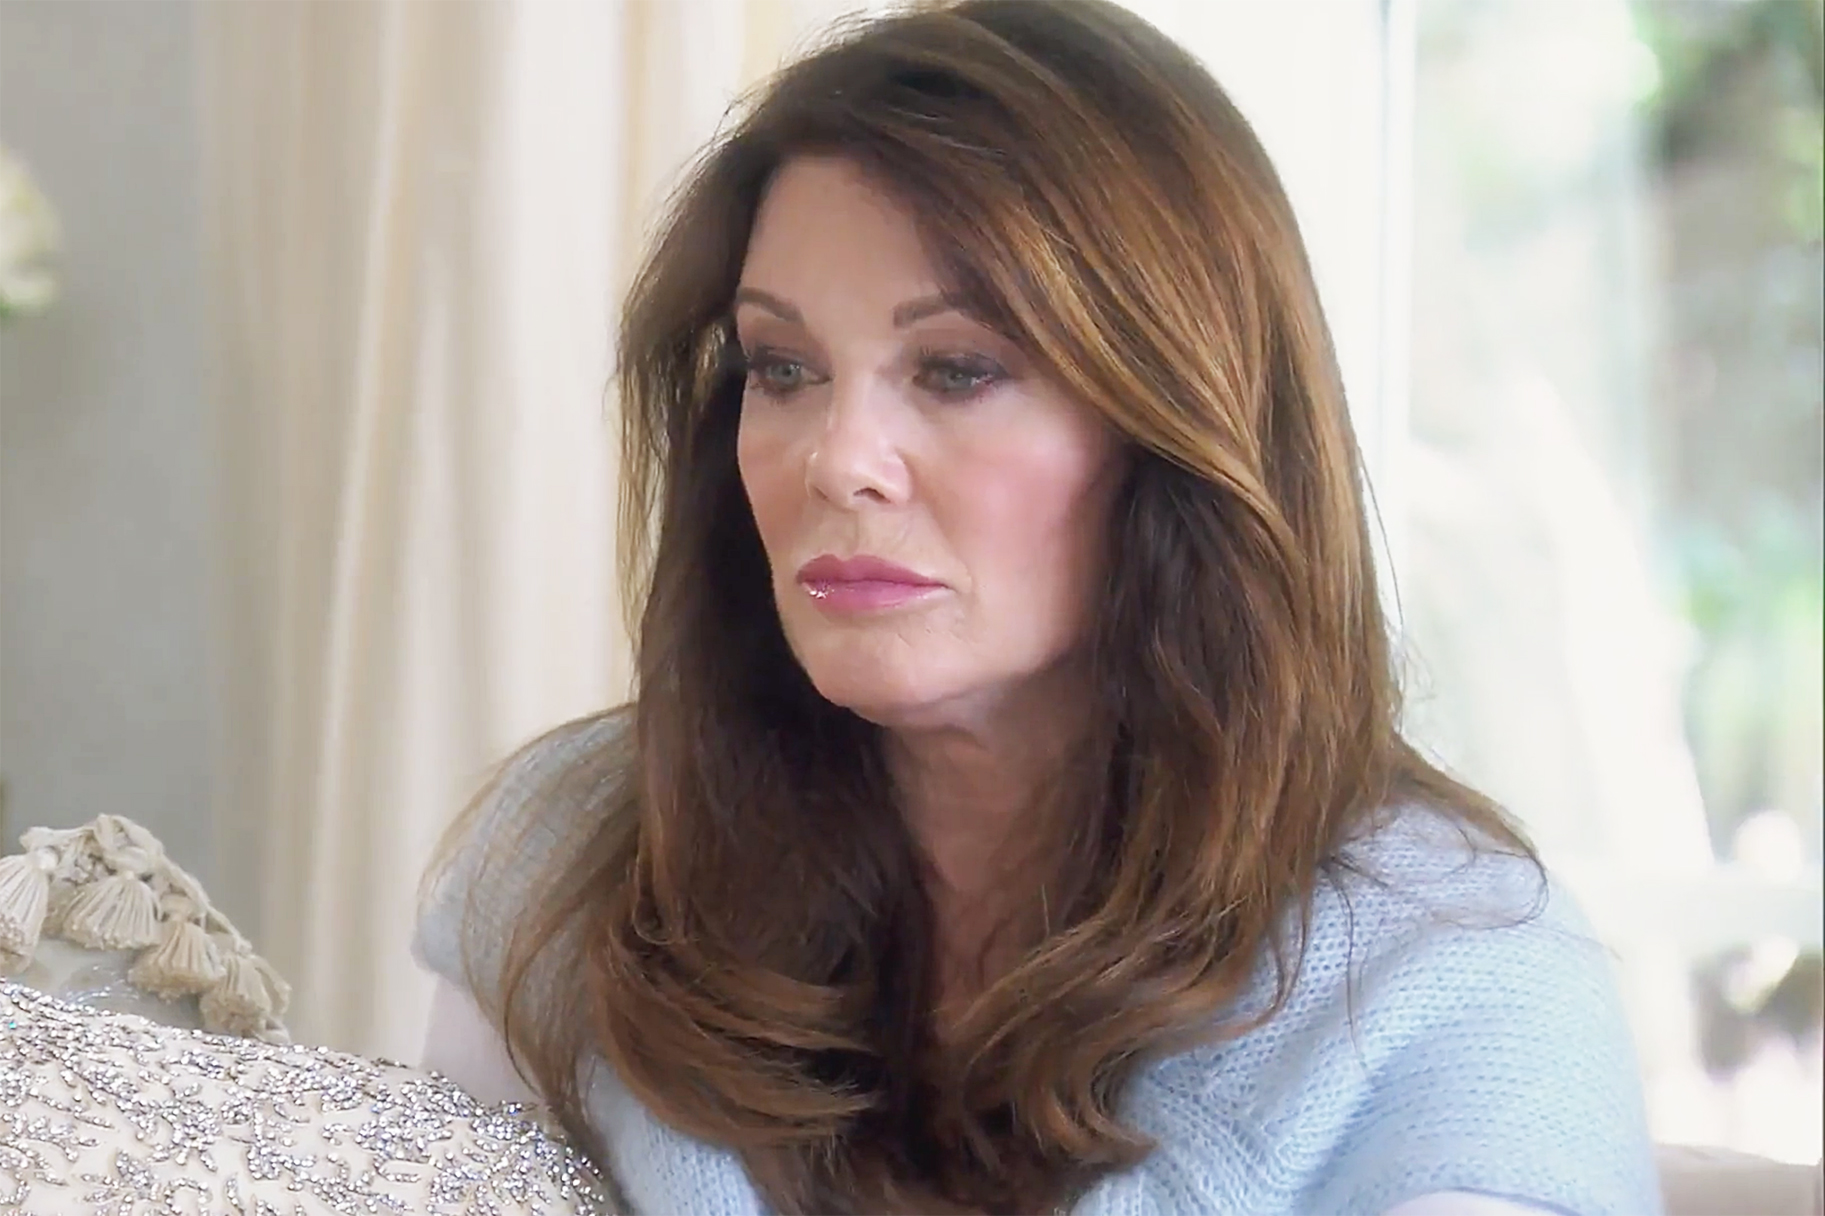 Lisa Vanderpump Lie Detector Test